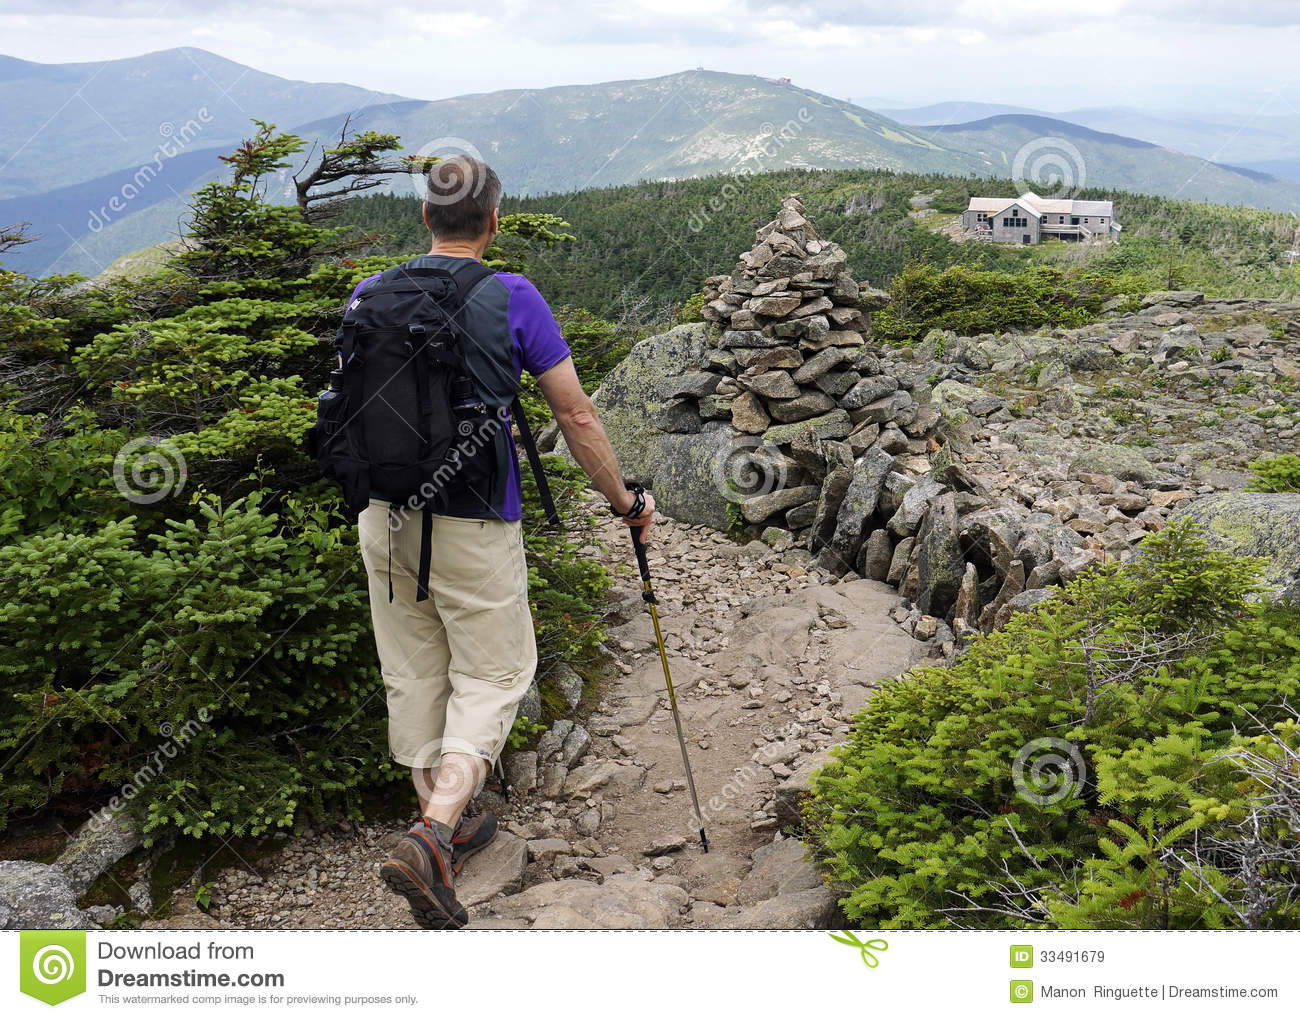 Hiking To Greenleaf Hut On Appalachian Trail Royalty Free Stock ...